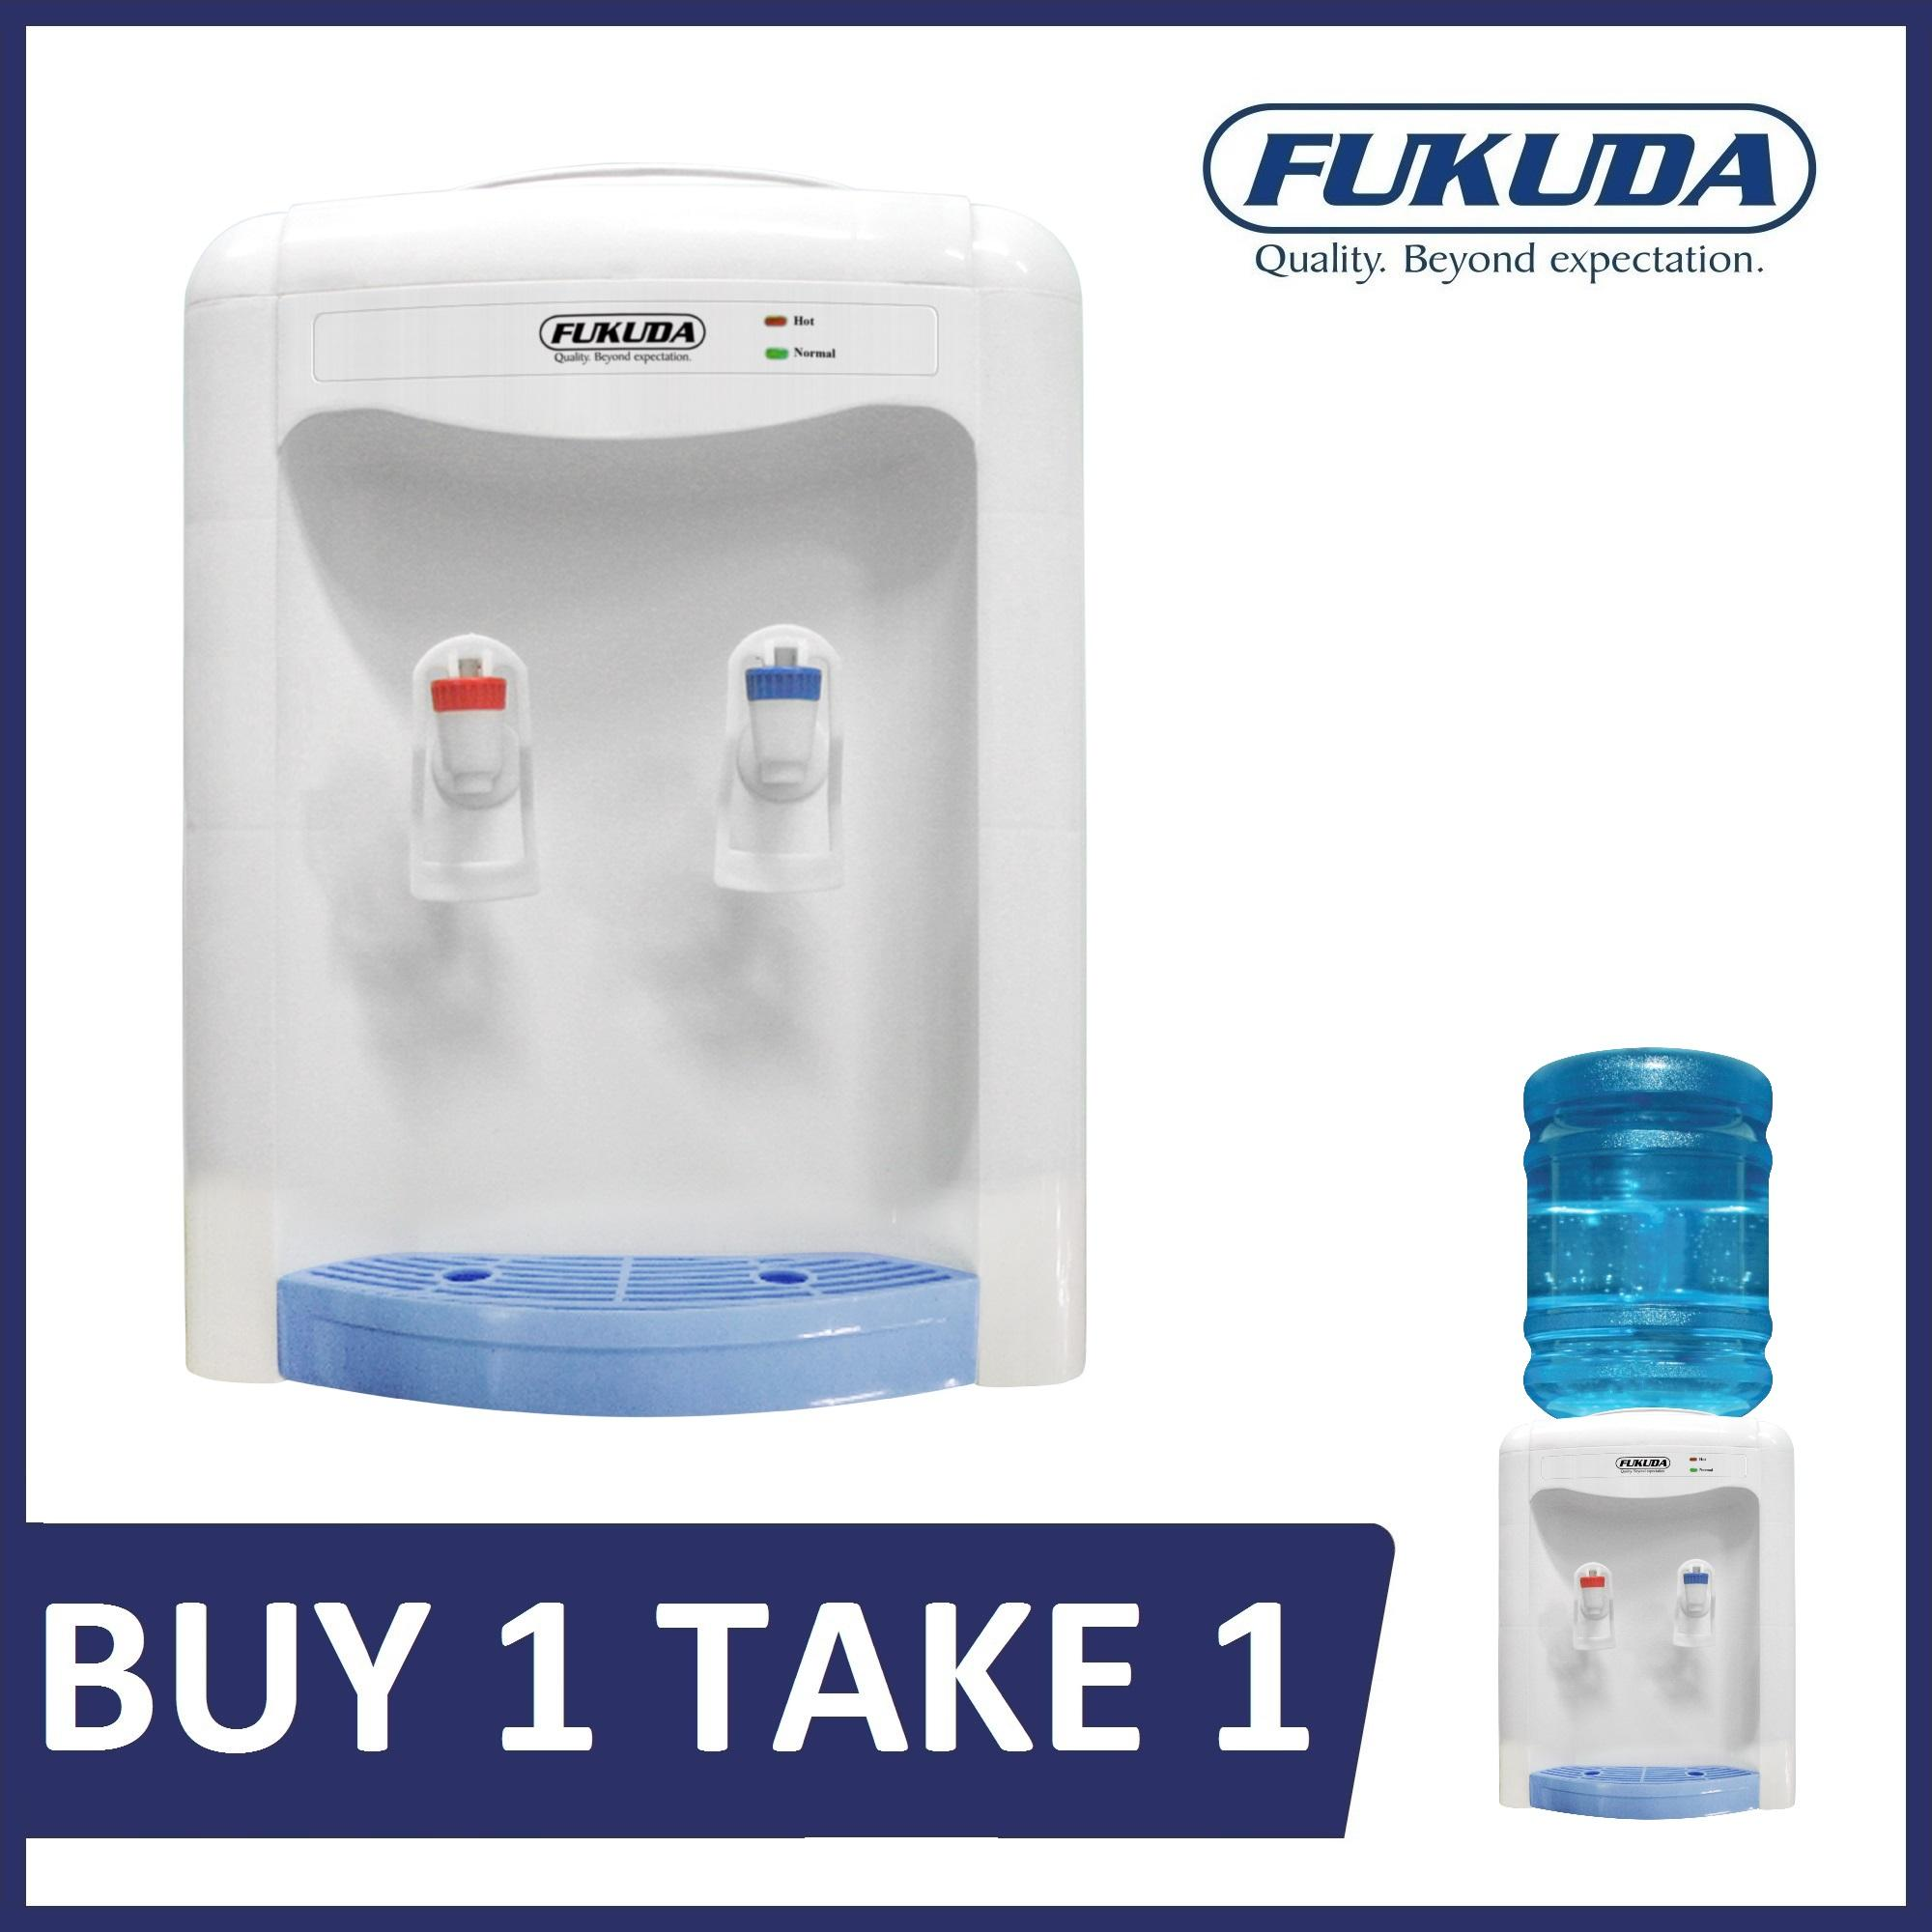 Fukuda Fwd-788l Table Top Hot And Normal Water Dispenser (white) Buy 1 Take 1 By Fukuda.